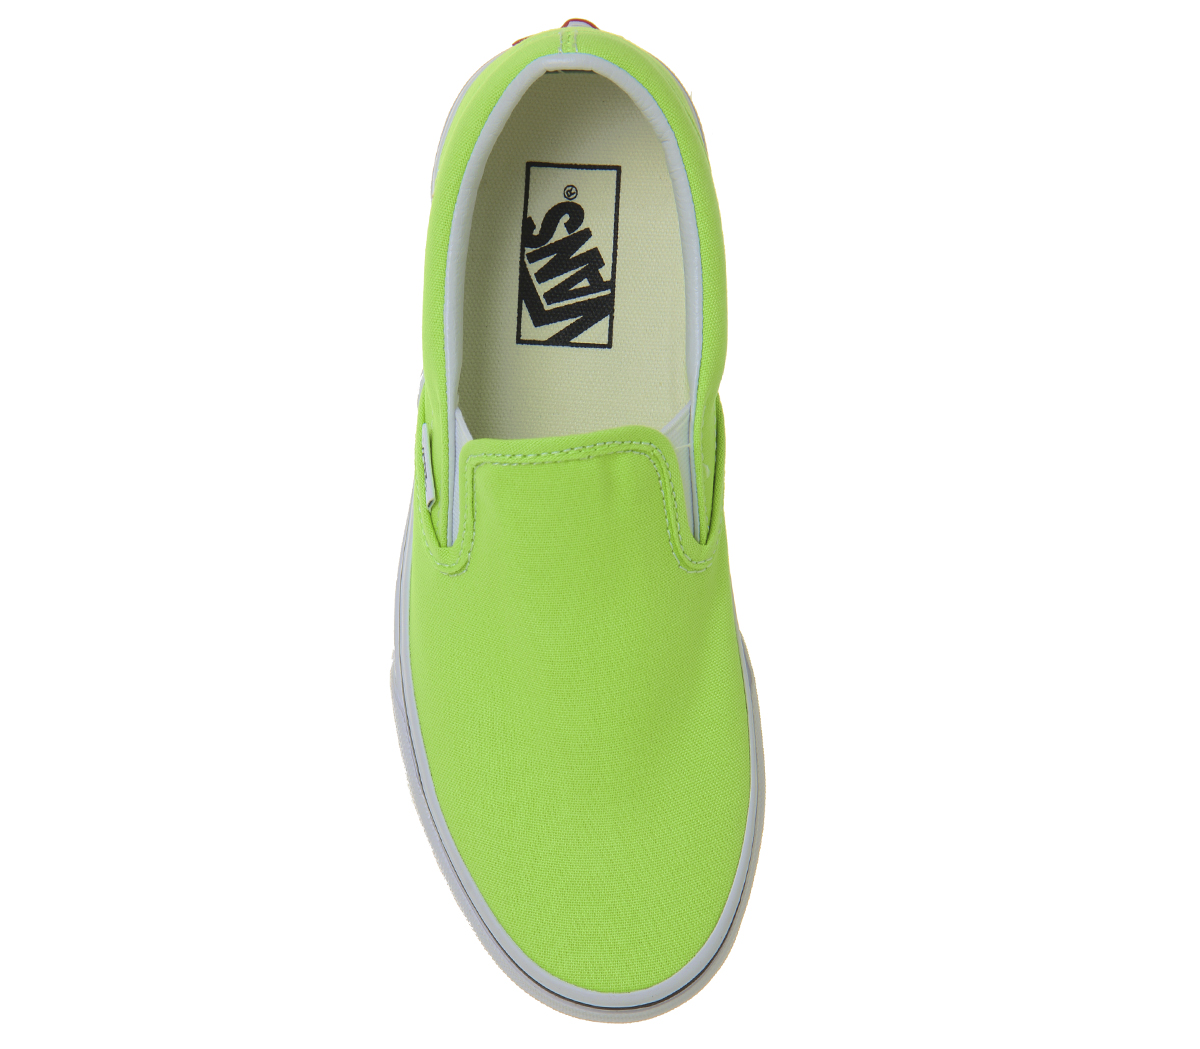 01bb9983a228 Sentinel Womens Vans Vans Classic Slip On Trainers Jasmine Green Trainers  Shoes